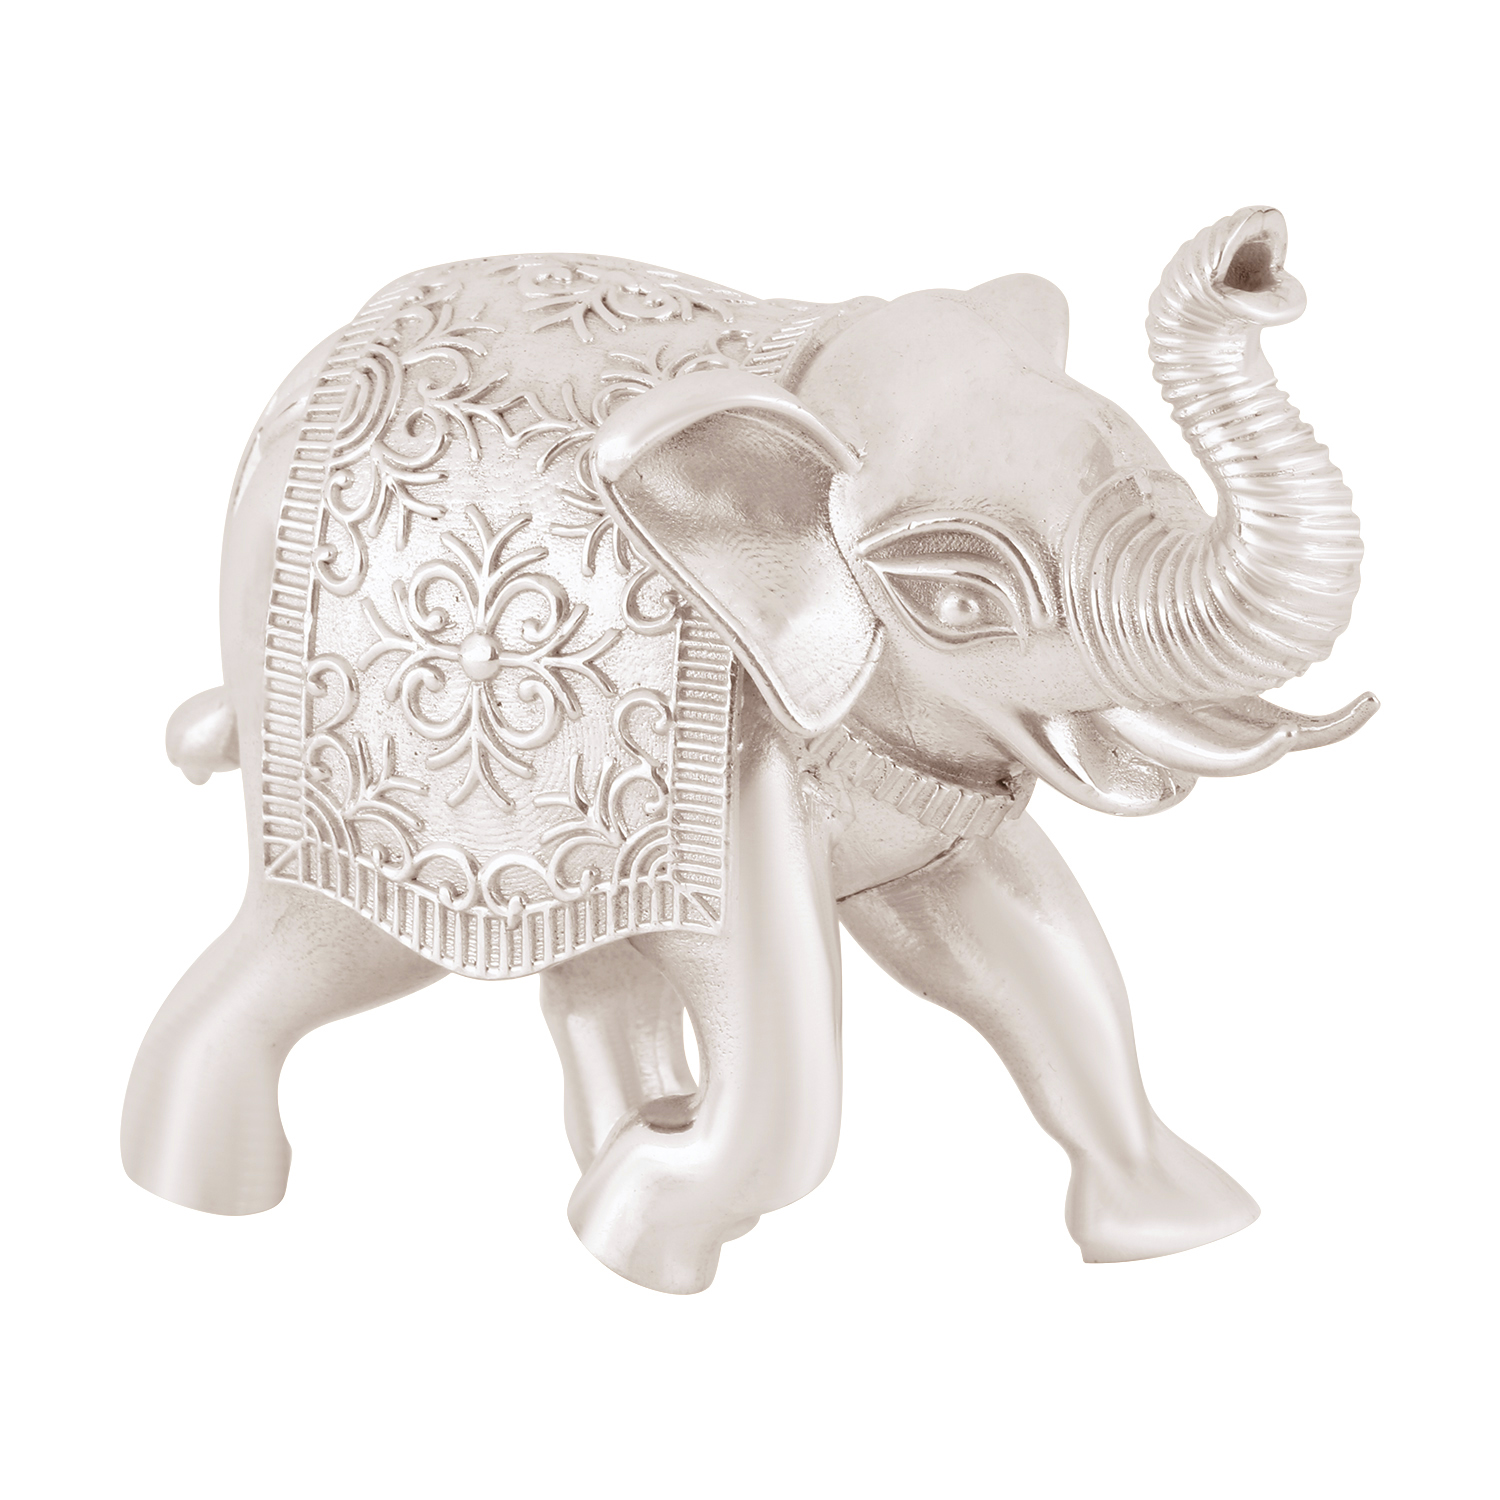 Elephant Statue in Silver by Osasbazaar Main